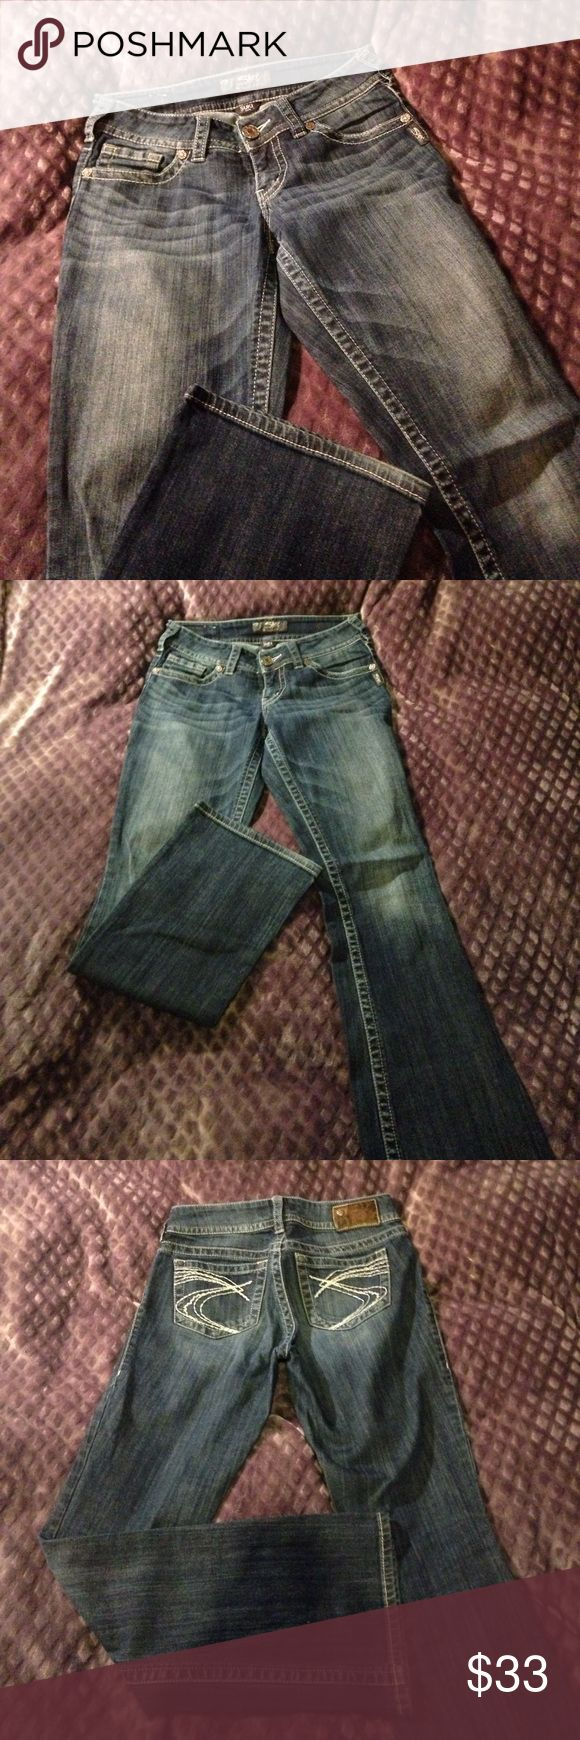 Women's Silver Jeans SUKI W27/L32 Pants Jeans worn only a handful of times. Very comfortable! Too small for me nowadays. Silver Jeans Jeans Flare & Wide Leg